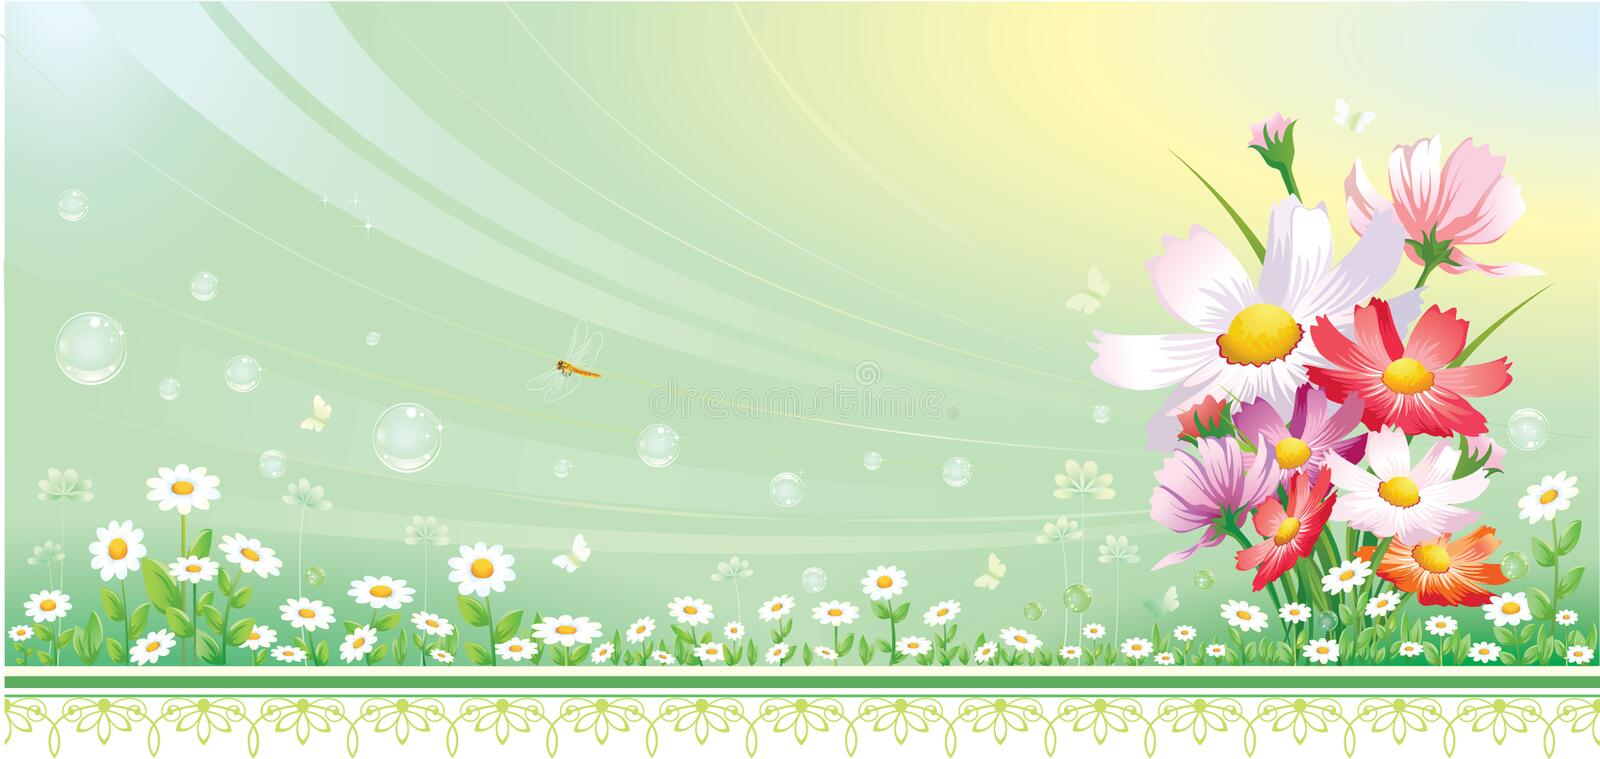 Floral design with bee royalty free illustration